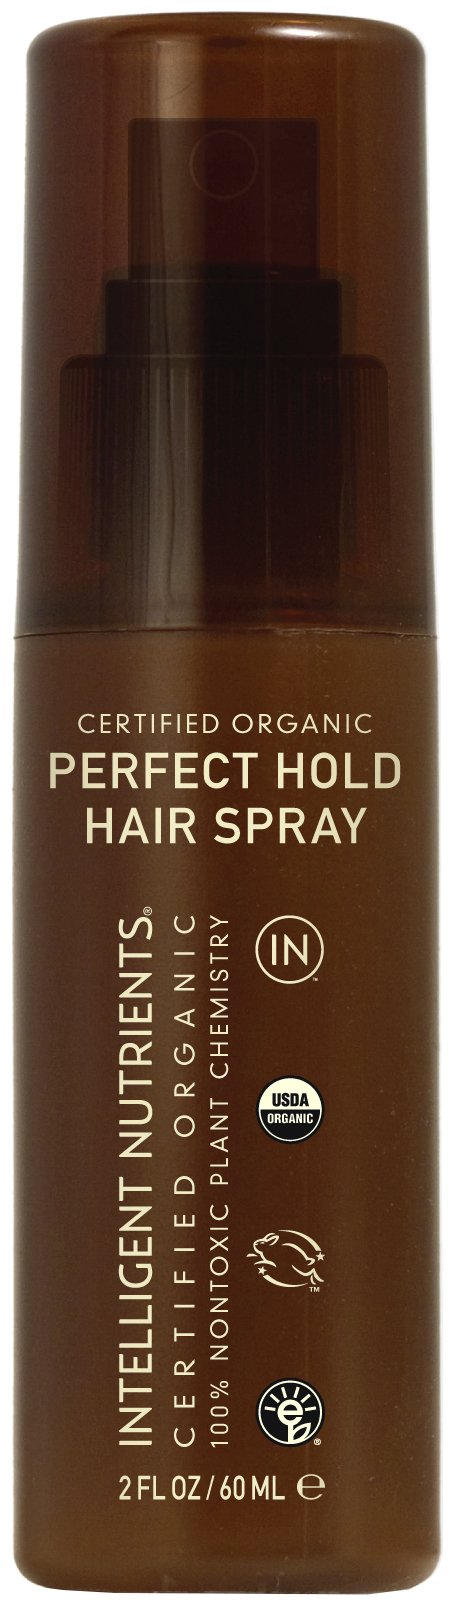 Intelligent Nutrients - Perfect Hold Hair Spray, Travel Size, 2oz